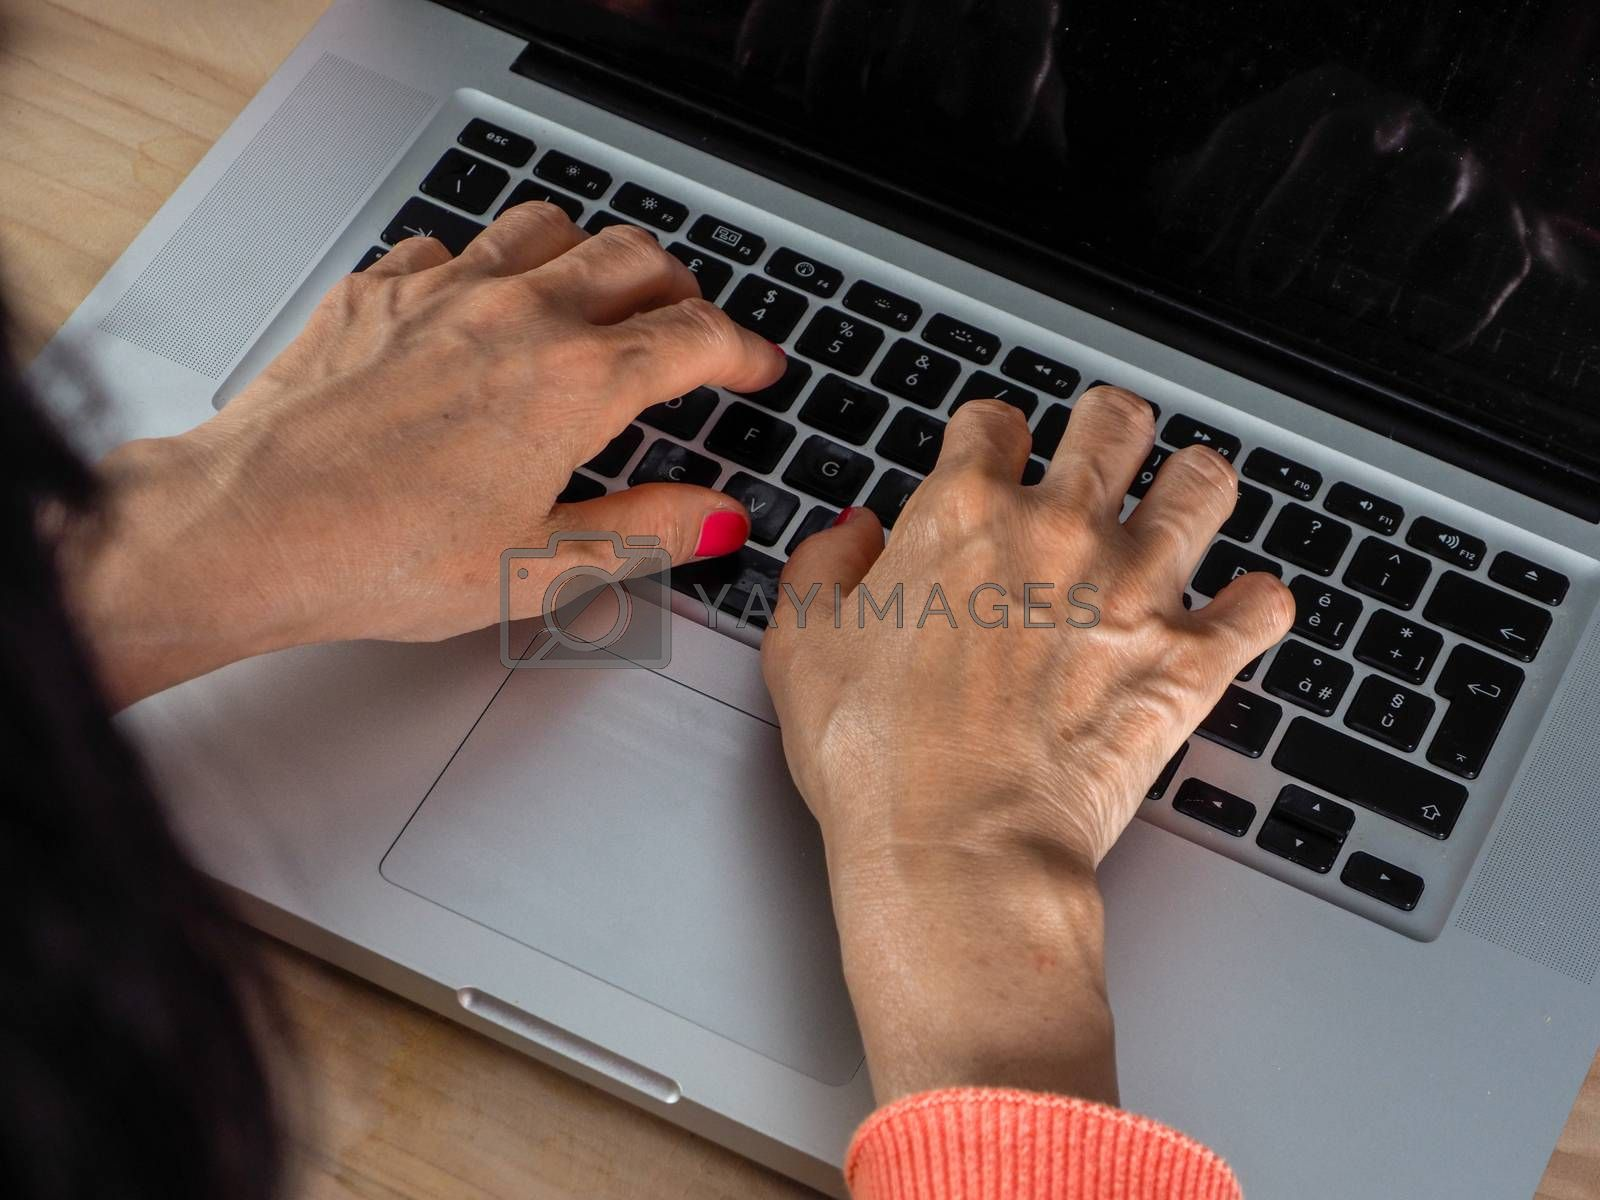 Woman hand s freelance working on a notebook laptop computer at home or home office with gel and face mask prevention items near connected to internet via hot spot of smartphone in fall, orange sweater and brown table, earth tones.